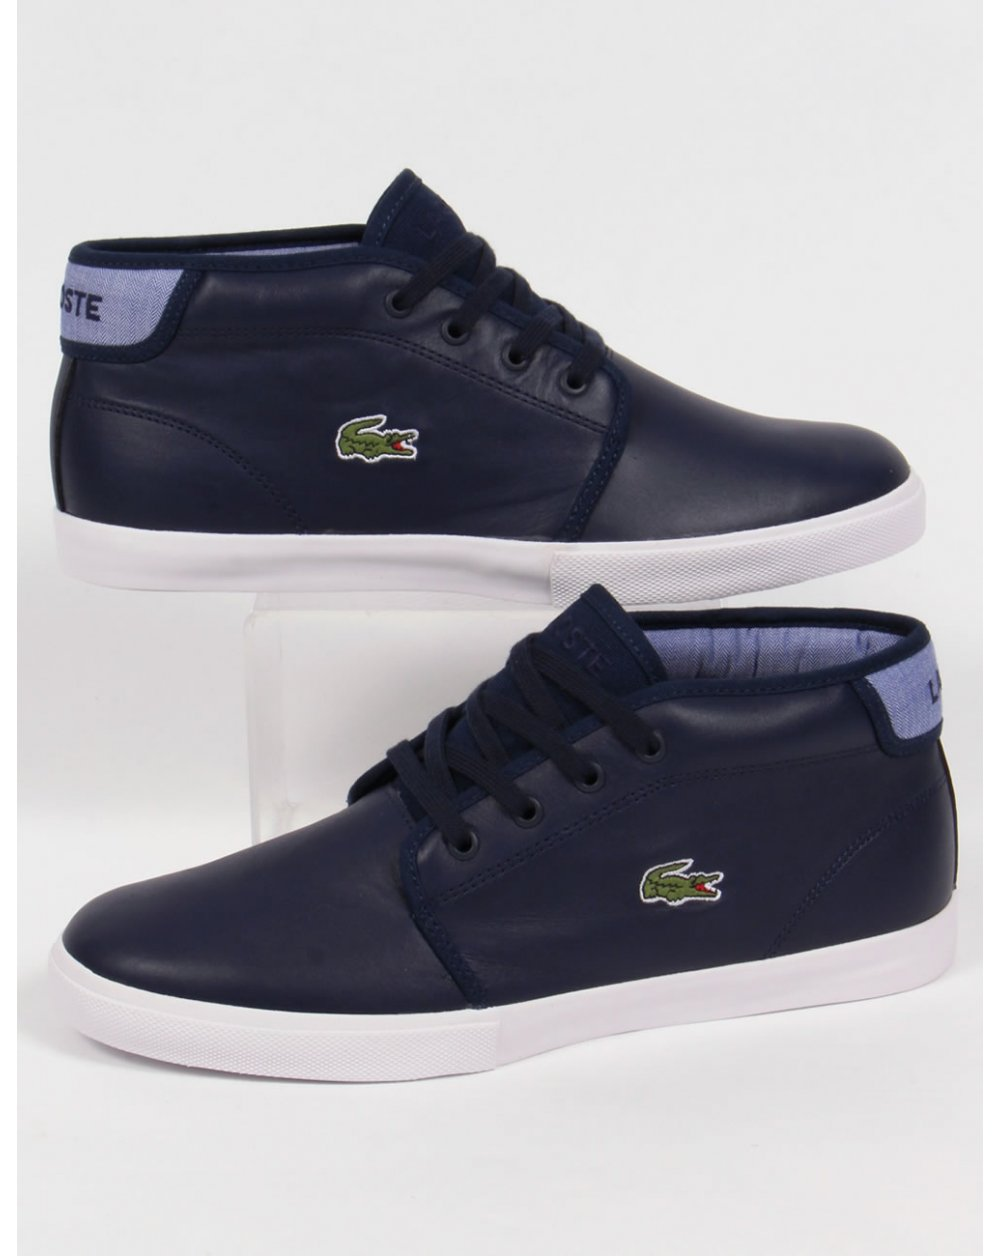 Lacoste Ampthill Leather Trainers Navy Blue Boots Shoes